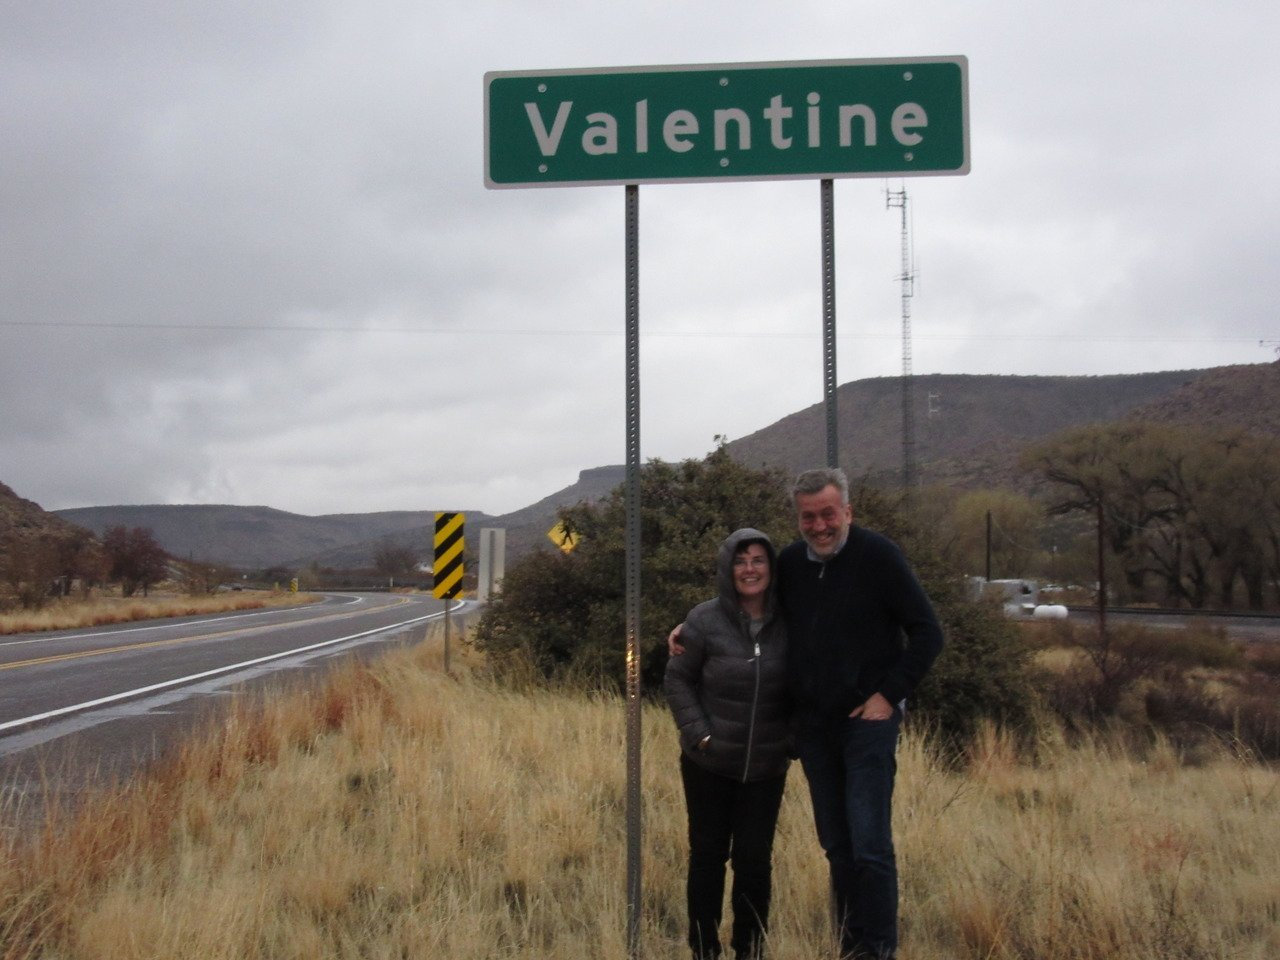 Valentine's Day at Valentine AZ